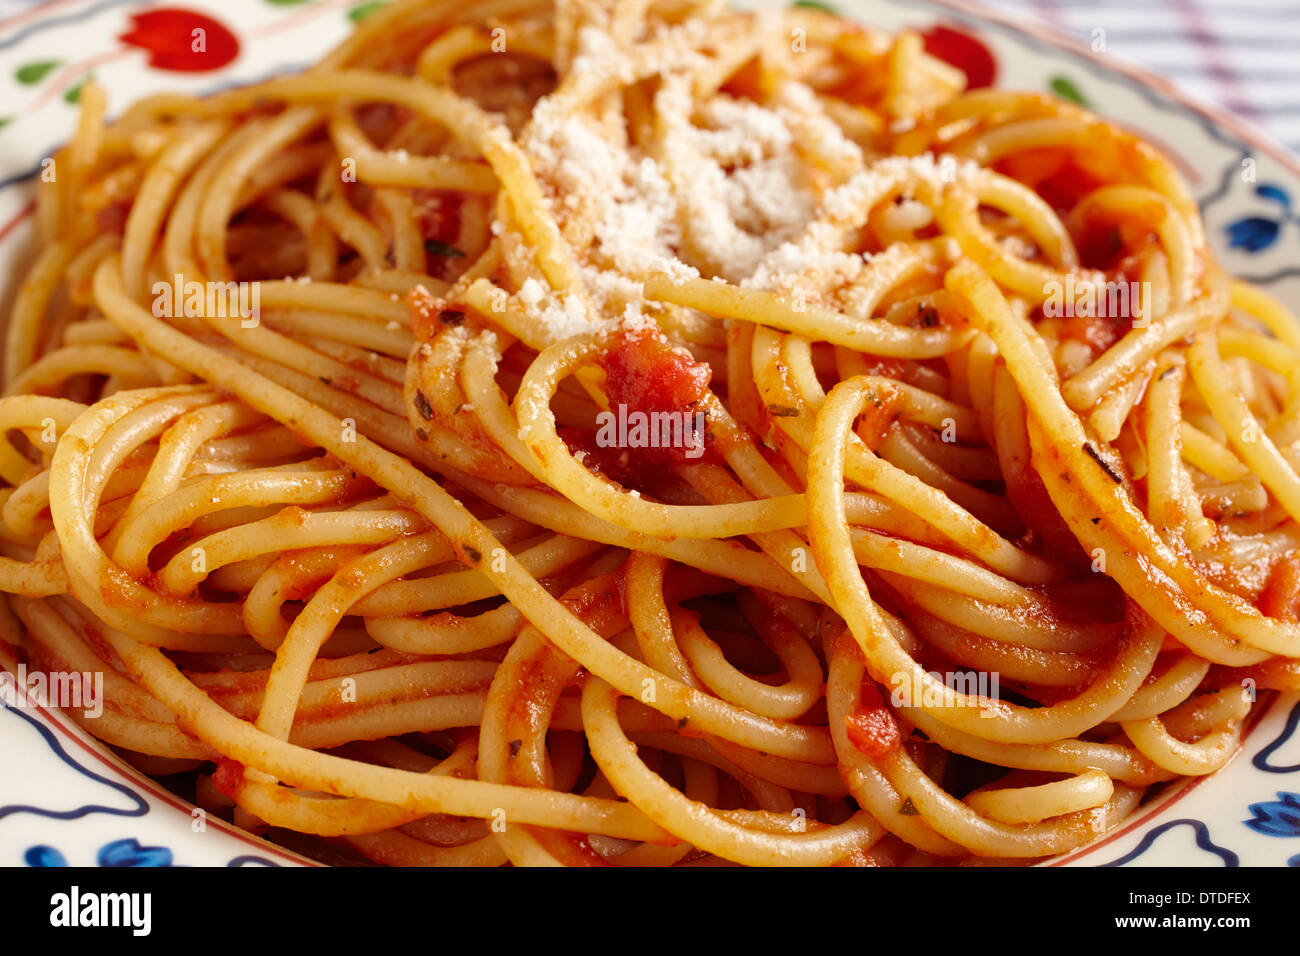 spaghetti with tomato sauce and grated cheese - Stock Image